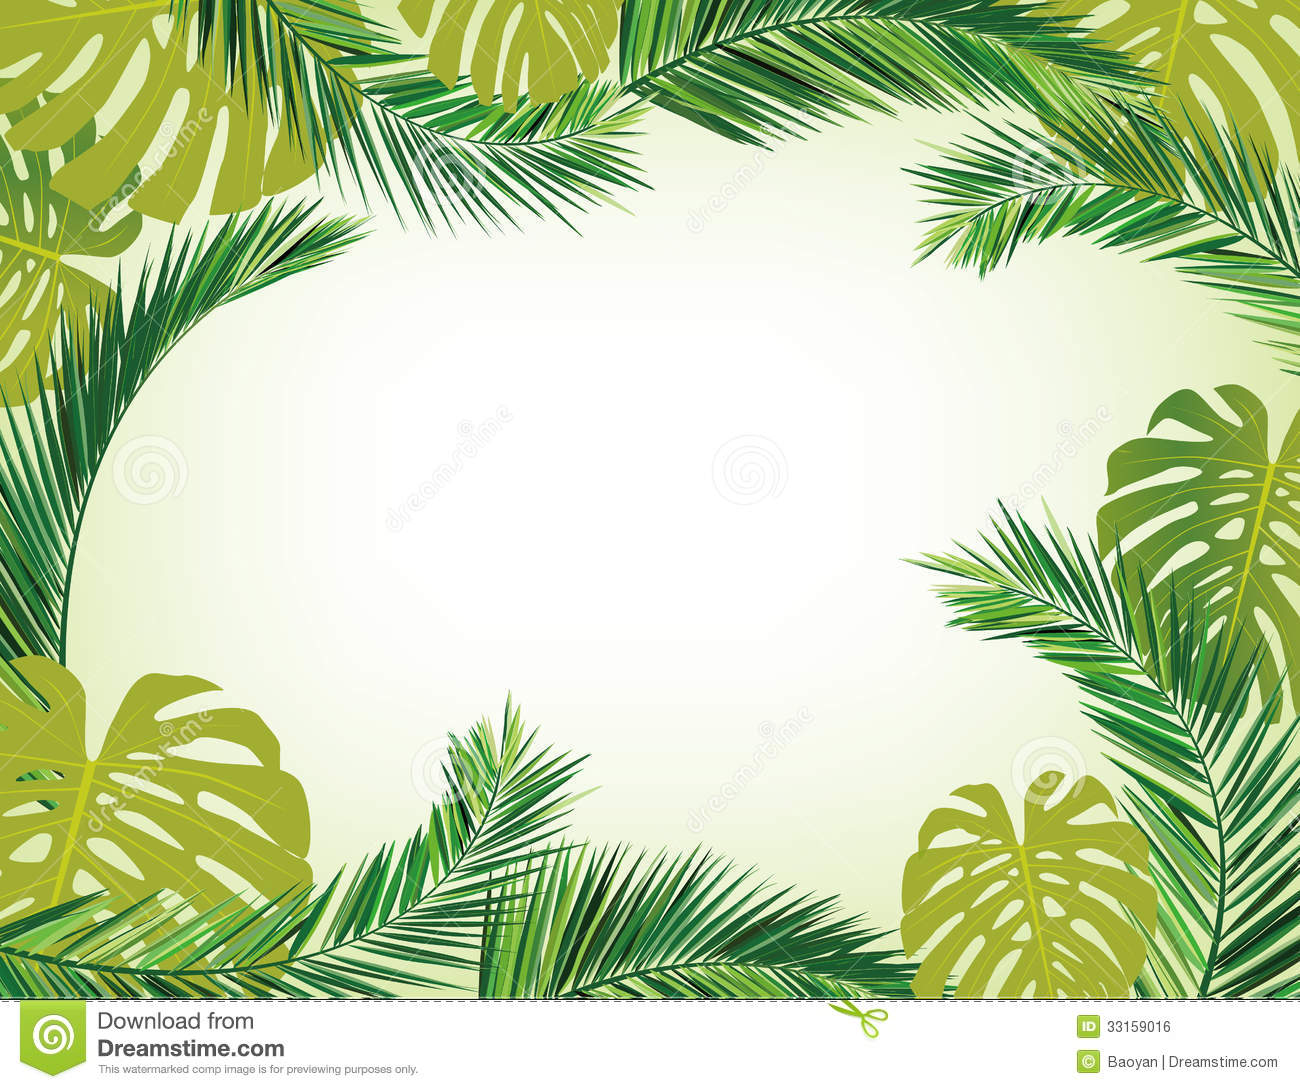 Coconut Leaves Royalty Free Stock Image - Image: 33159016